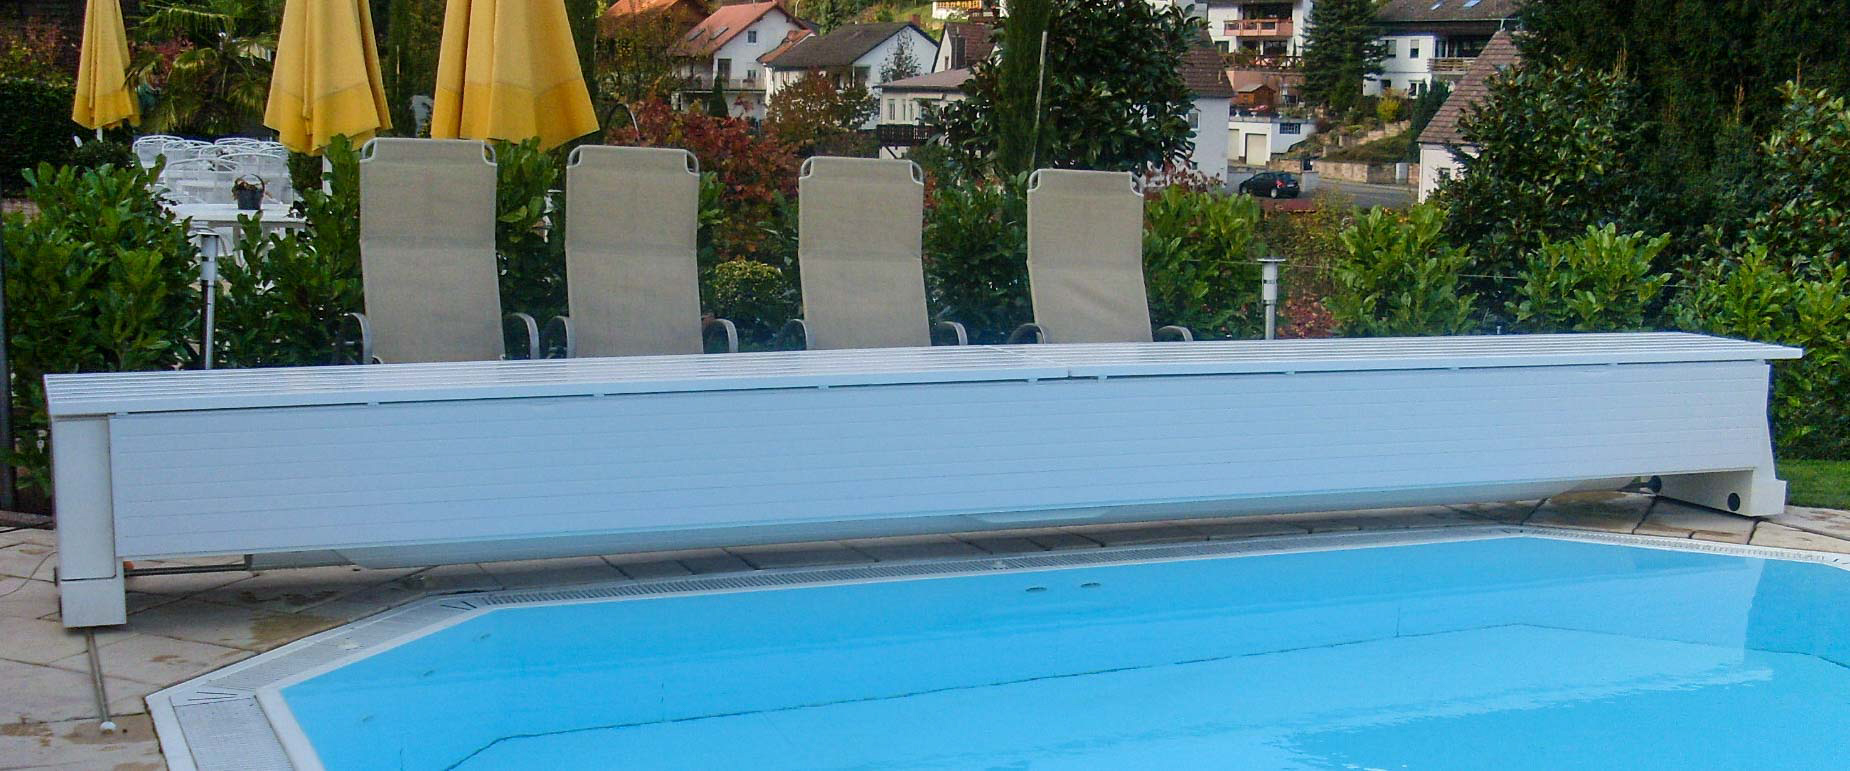 Automatic Rigid Pool Cover System Type Mobile Grando